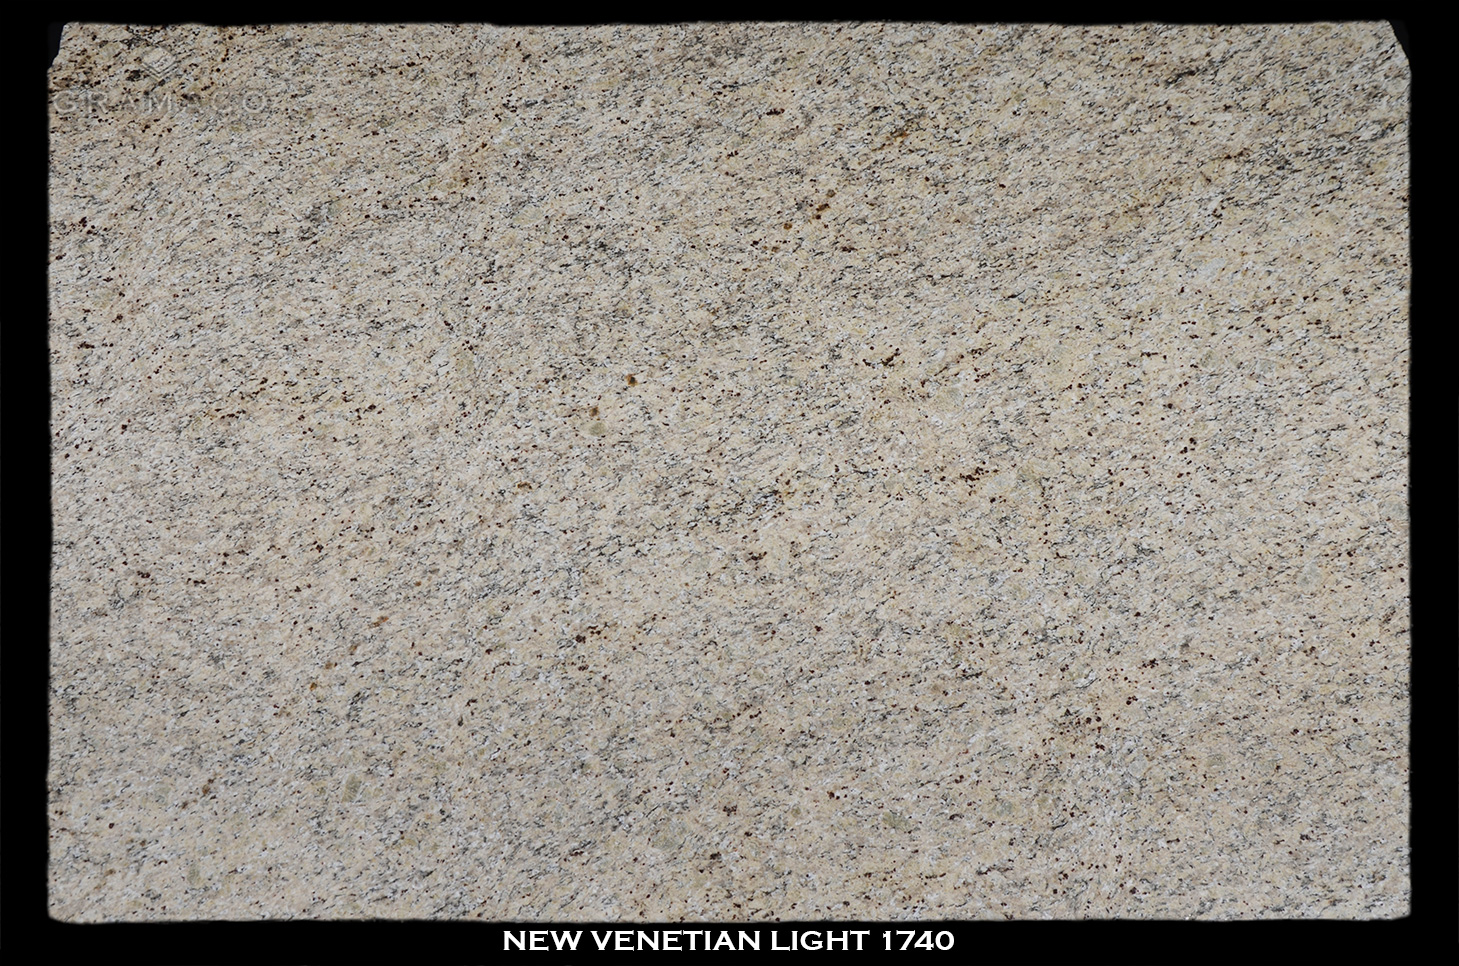 NEW-VENETIAN-LIGHT-1740-slab